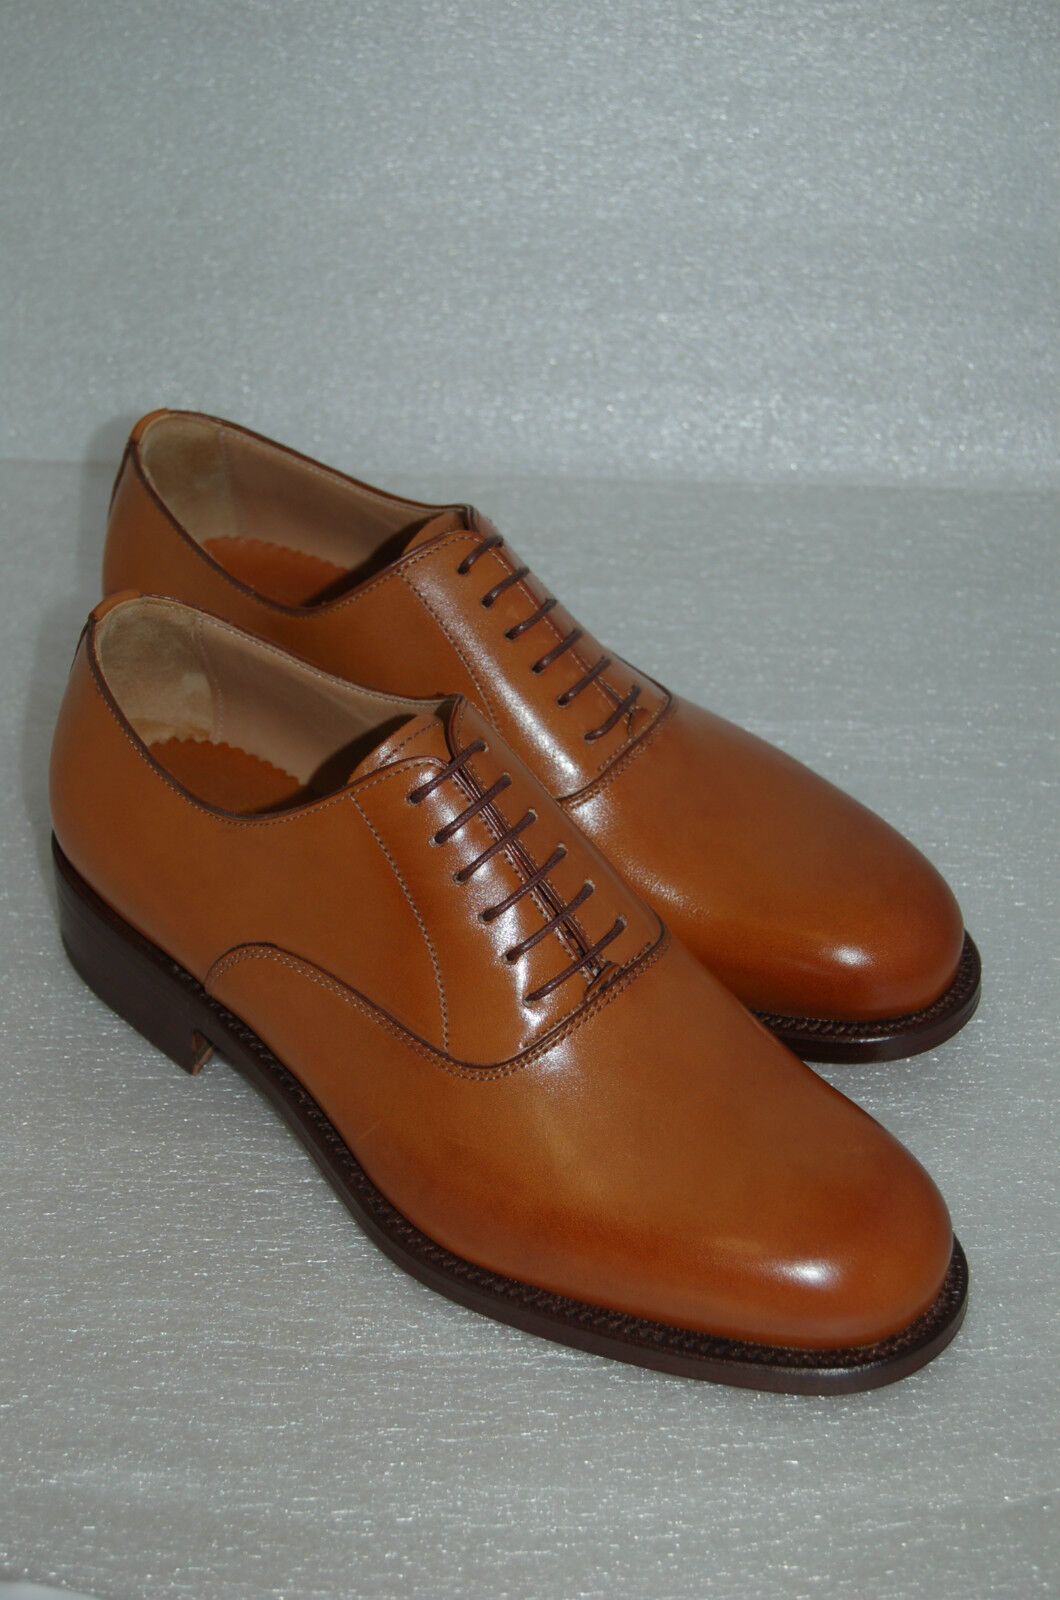 MAN - 40- 6eu- OXFORD - TAN CALF - VITELLO COL.BOMBAY-DOUBLE LTH SOLE/BLAKE CSTR